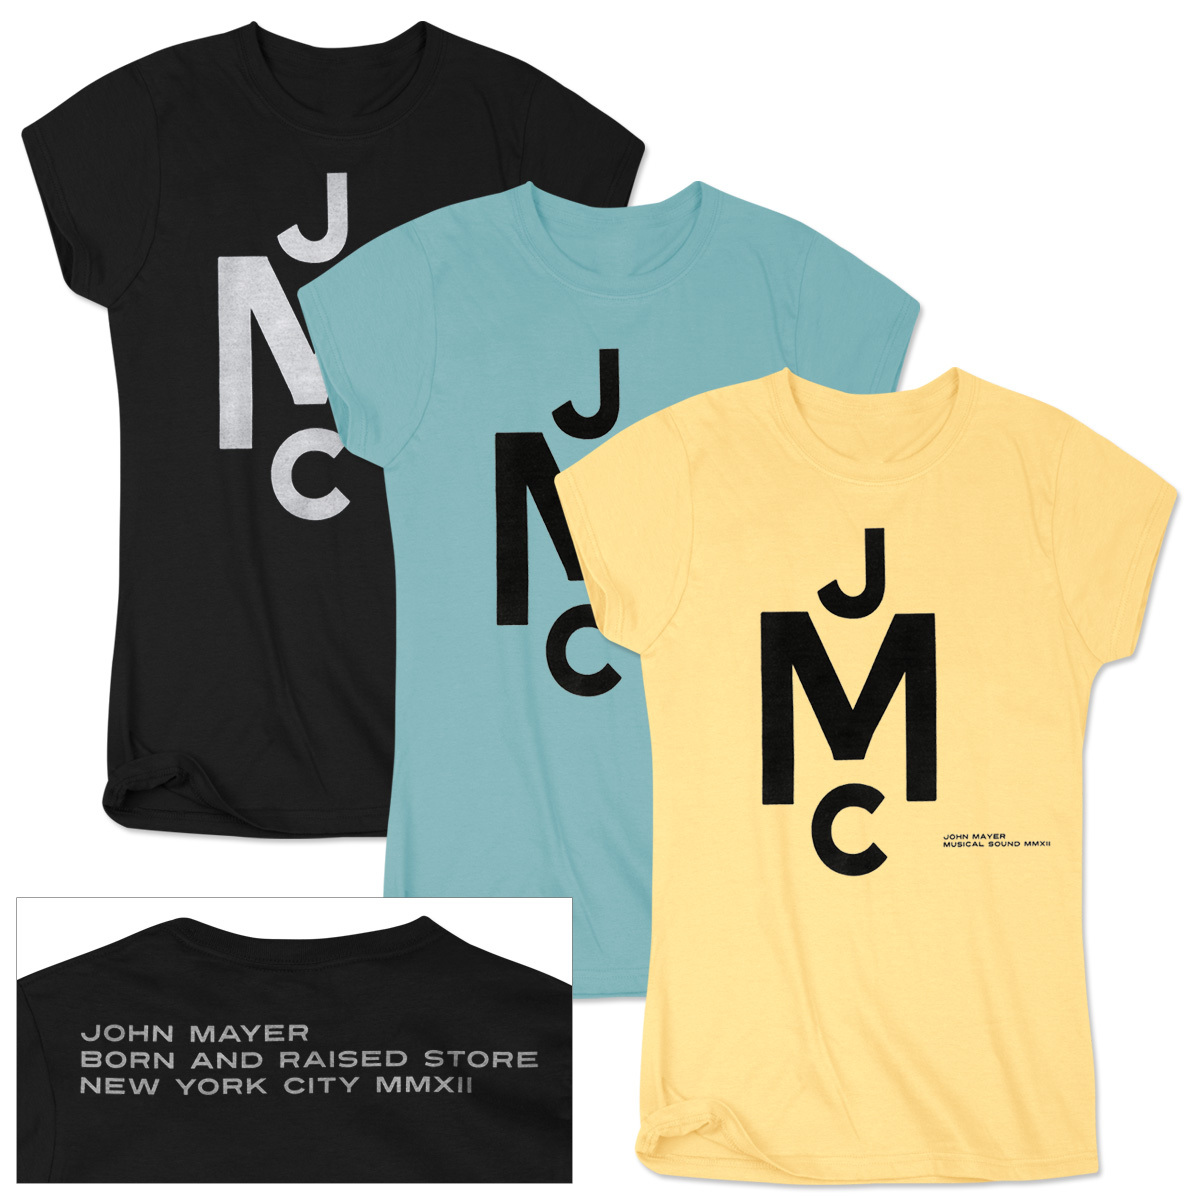 JCM Monogram Women's Shirt